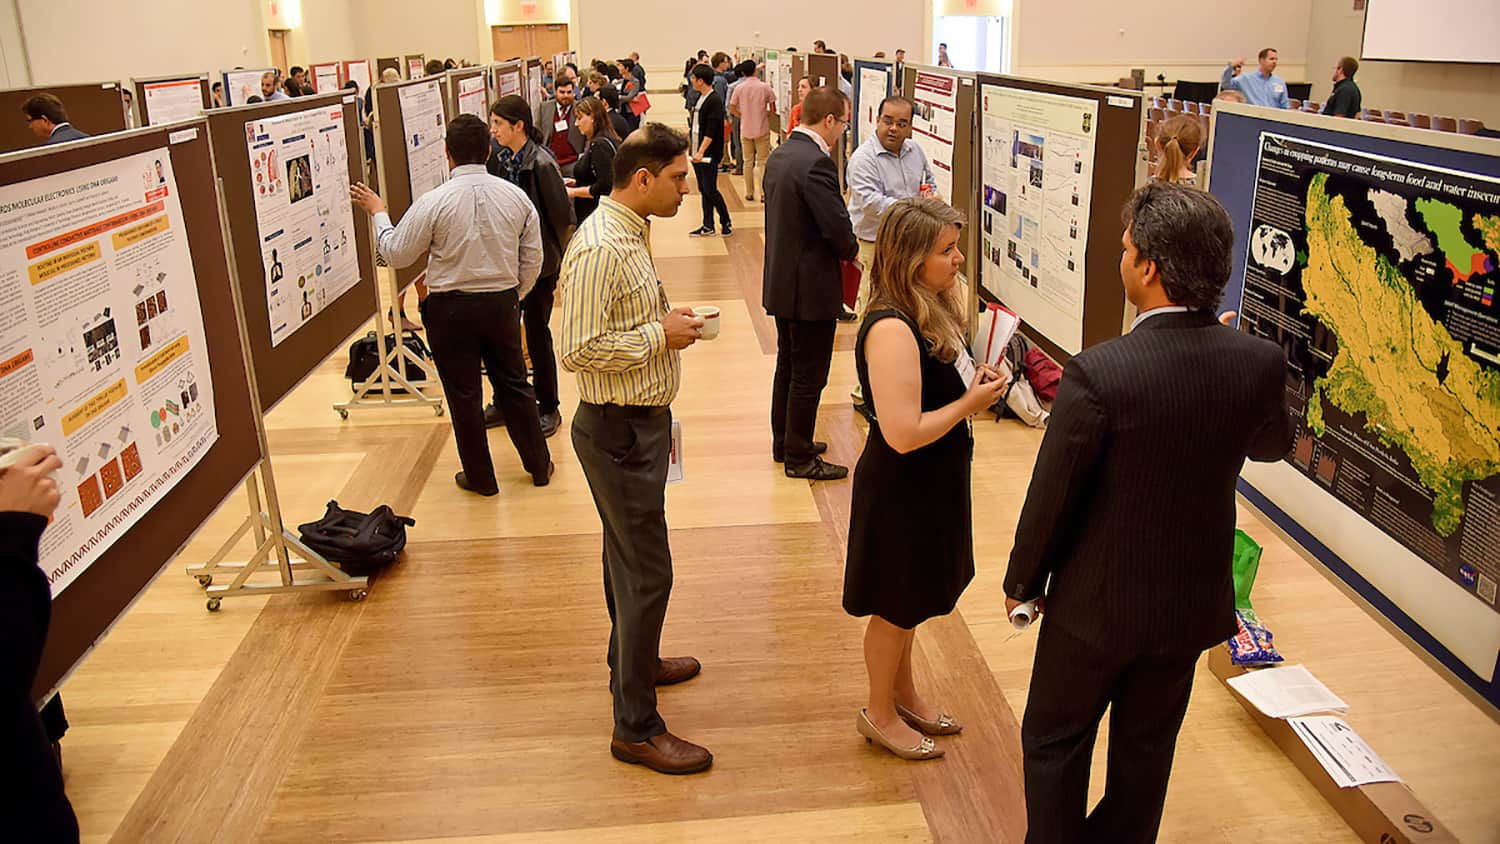 Students and attendees at a research symposium on campus